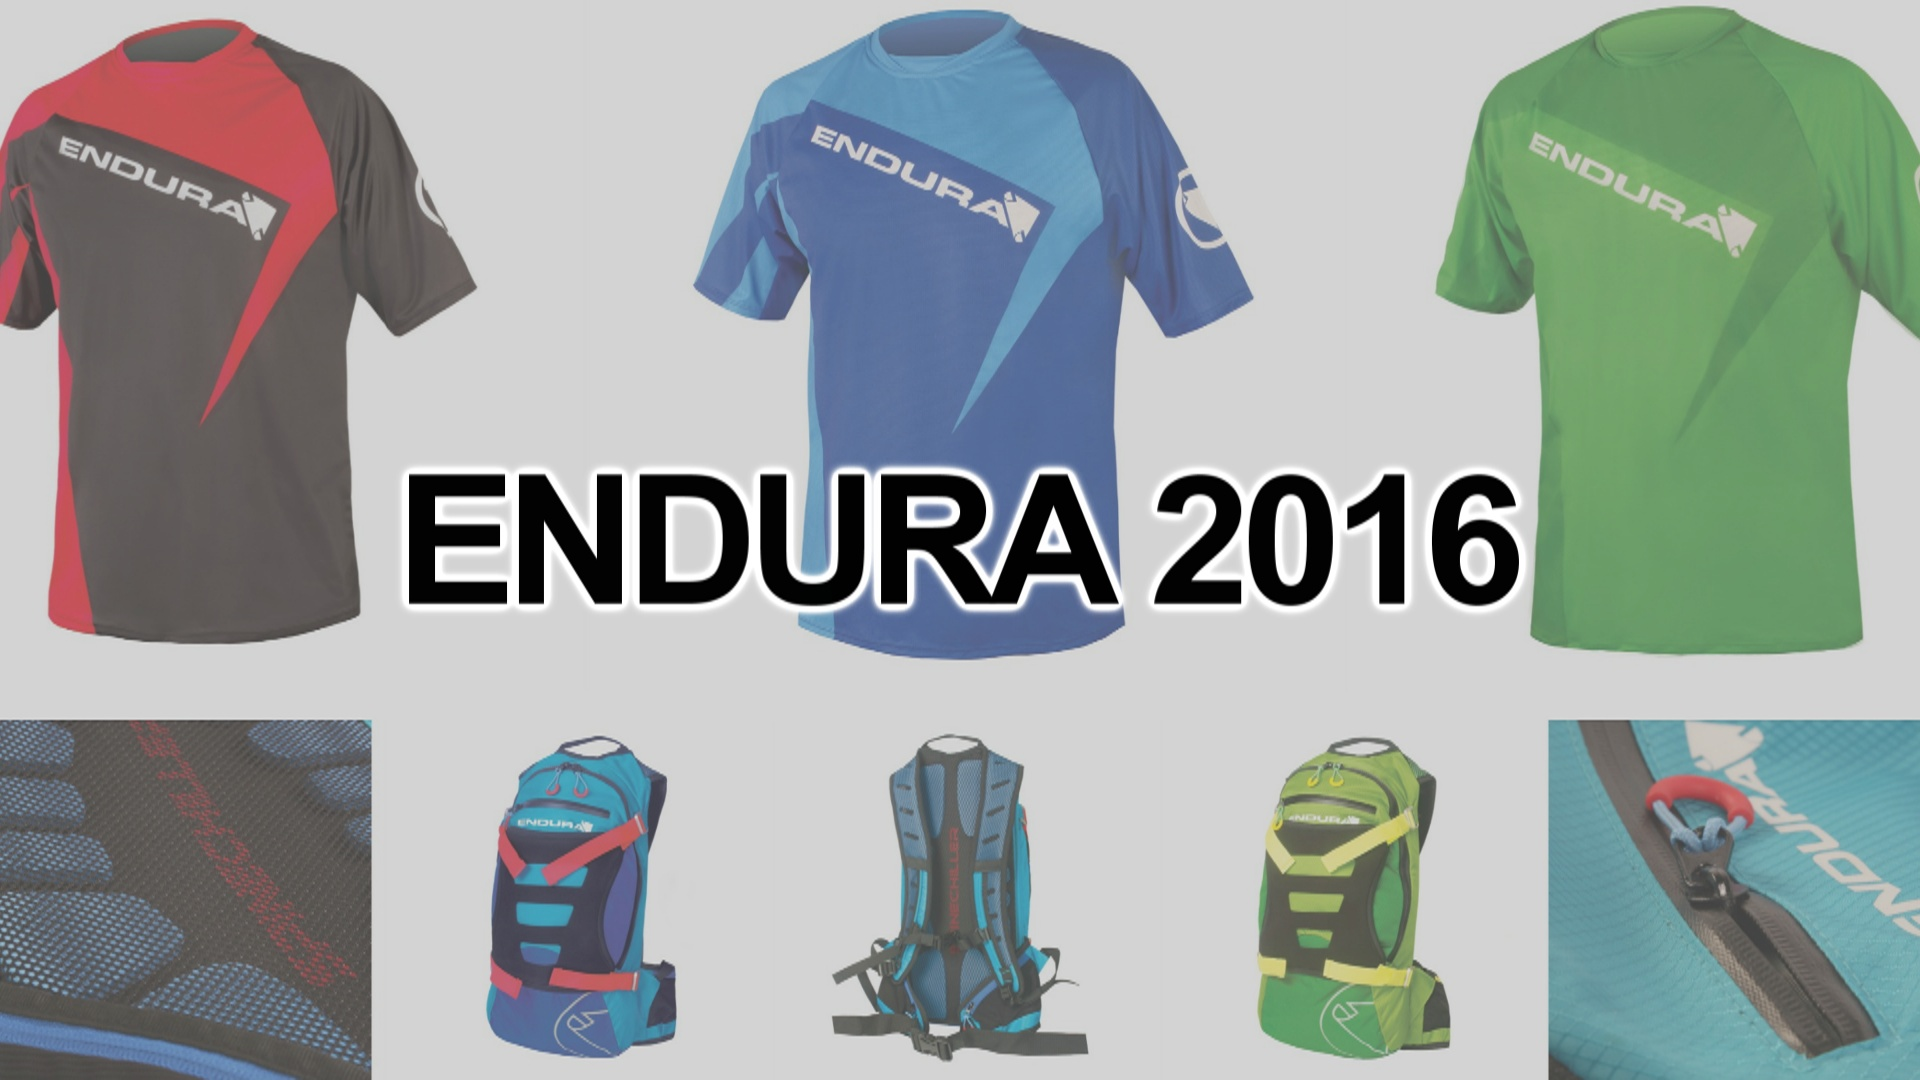 United colors of Endura?